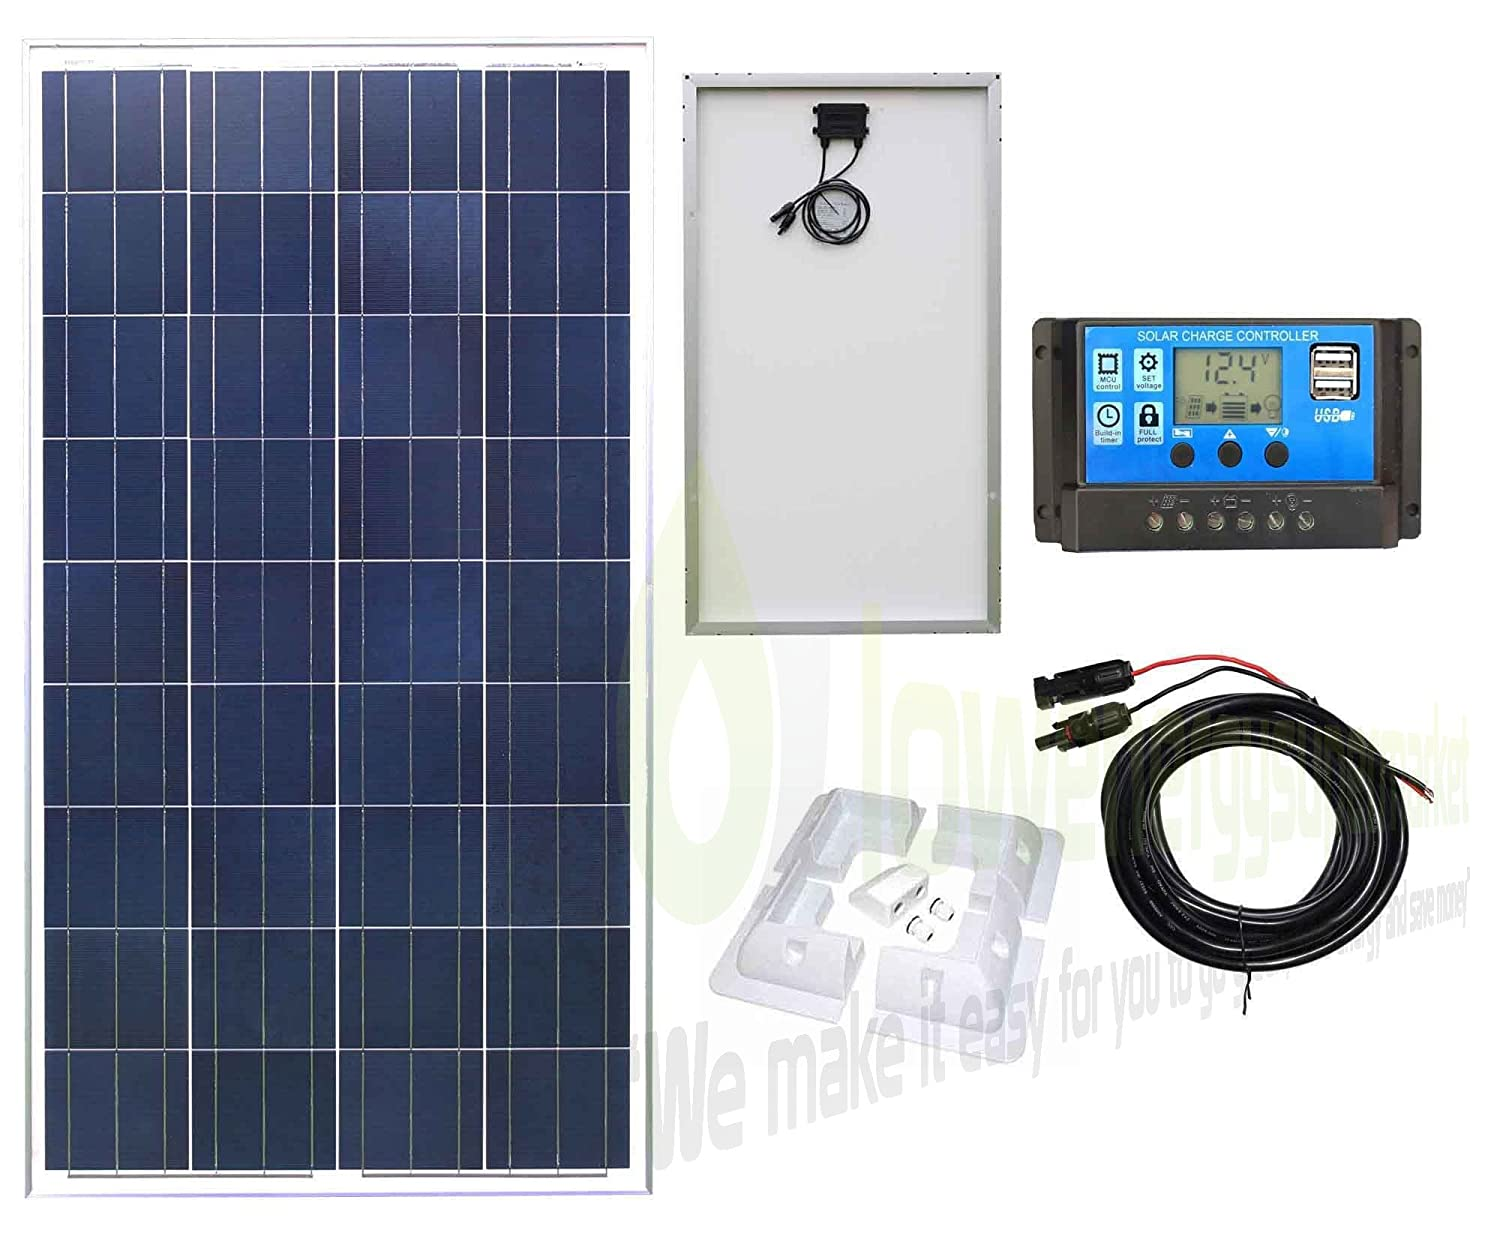 Lowenergie 10W Poly-Crystalline Solar Panel Battery Charging Kit Charger Controller & Mounting Bracket Set K2. For Caravans, Motorhomes, Boats & Any Flat Surface